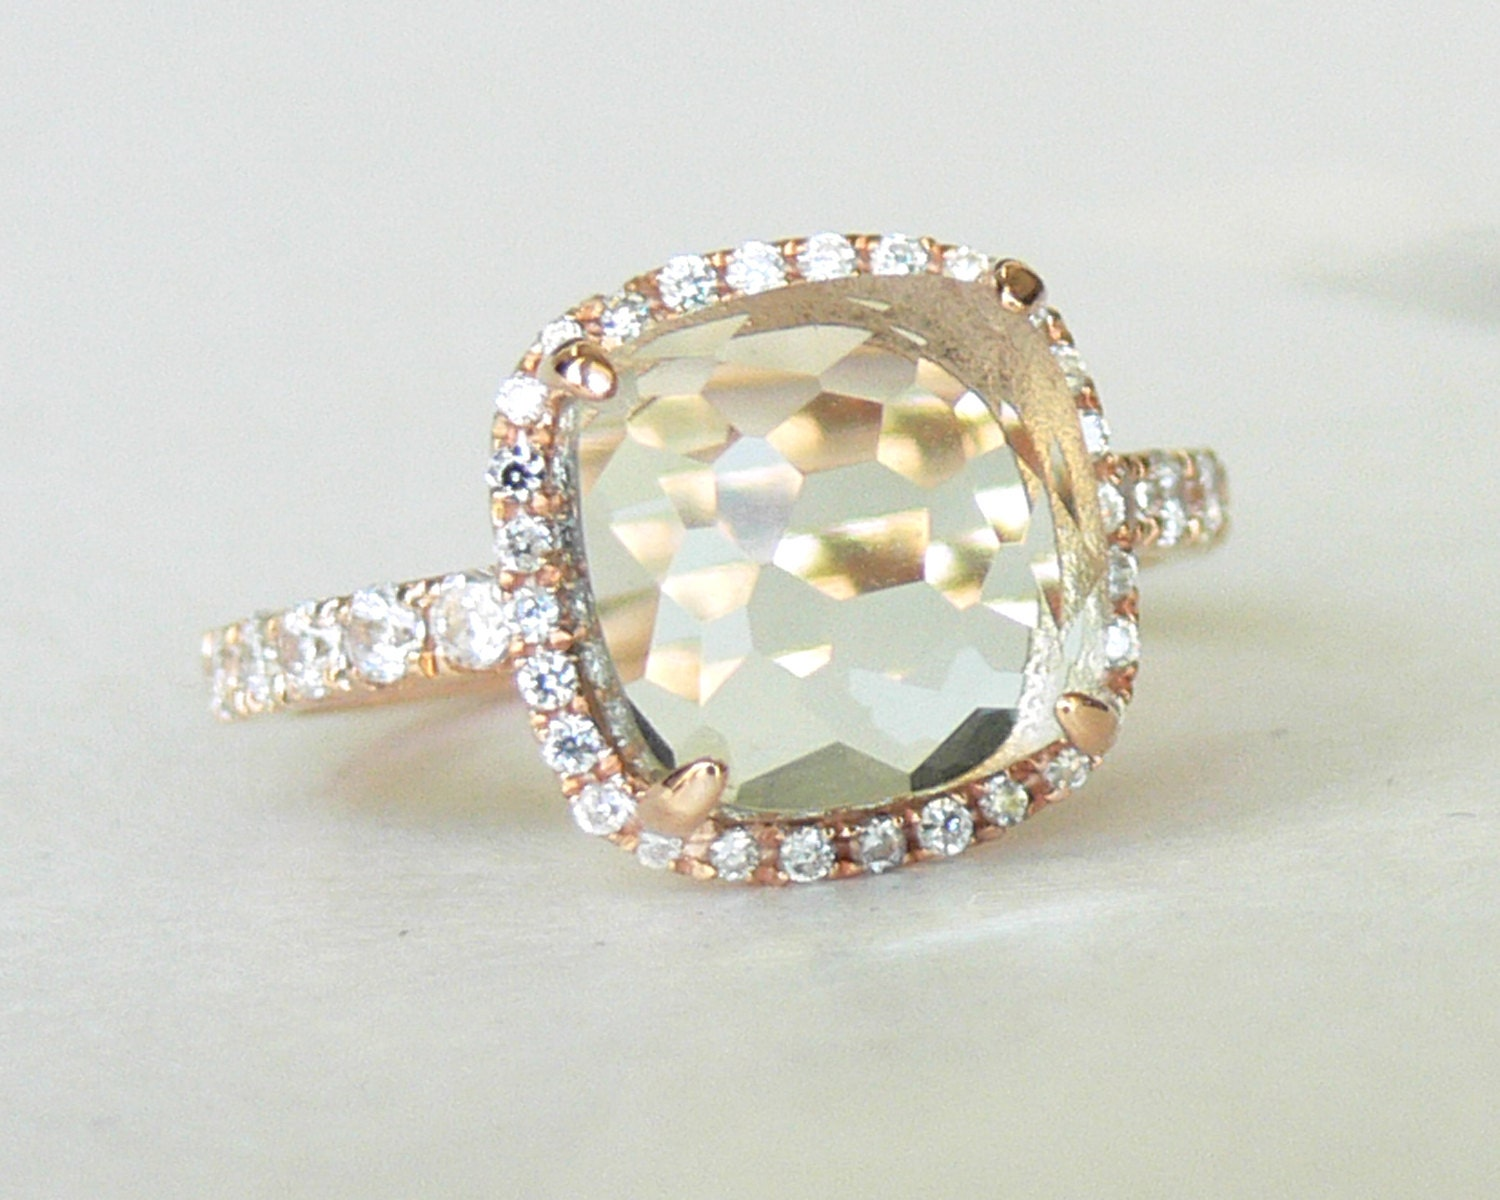 Ready to Ship - Green Amethyst Pristinely Cushion Cut 18K Rose Gold Vermeil Ring - ShowcaseJewelry